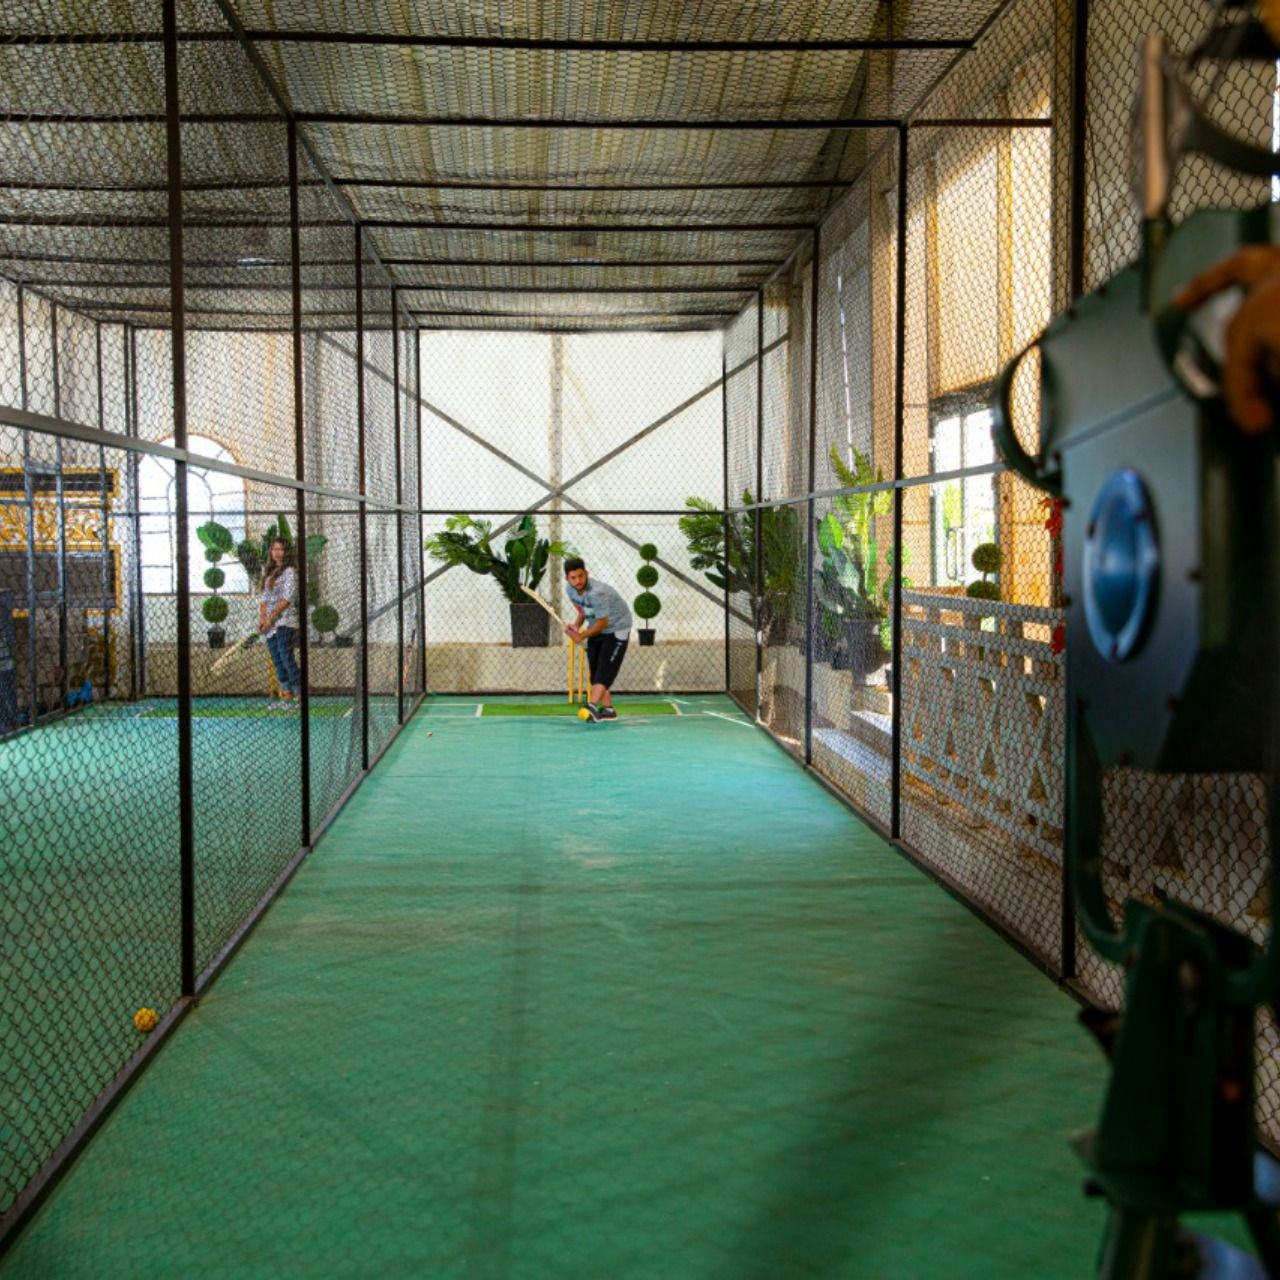 Welcome To The World Of Pavilion End Club One Of The Best Clubs In Karachi For Escalating One S Social Life Through Premier R Pavilion Best Club Indoor Sports